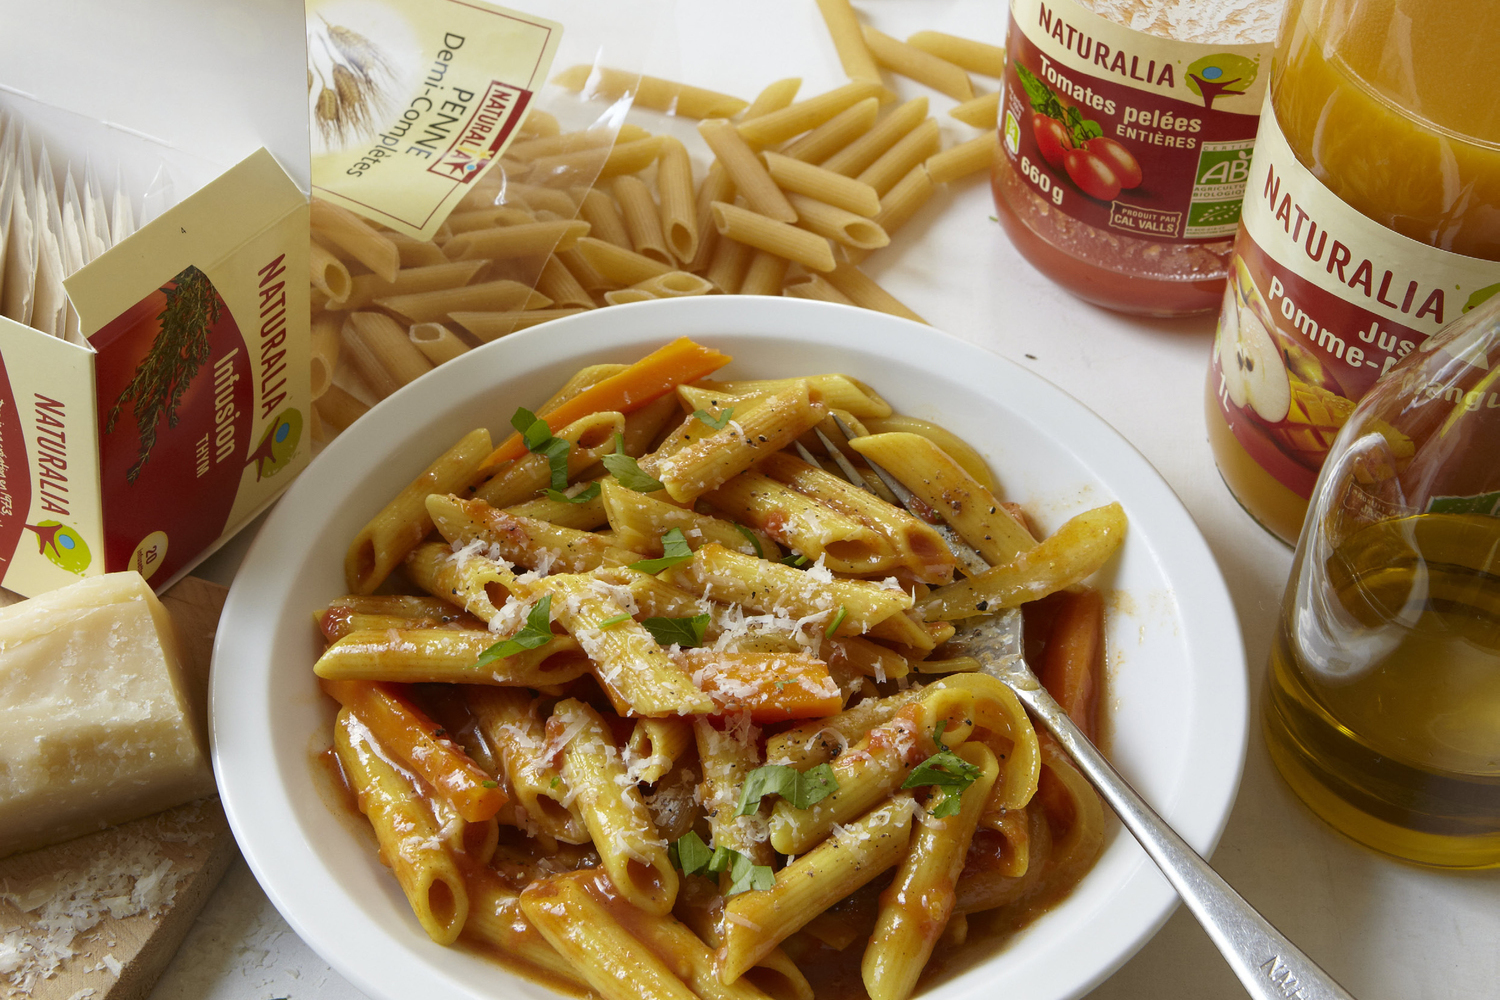 Yvan Cadious Semi Complete Penne With Vegetables Risotto Style